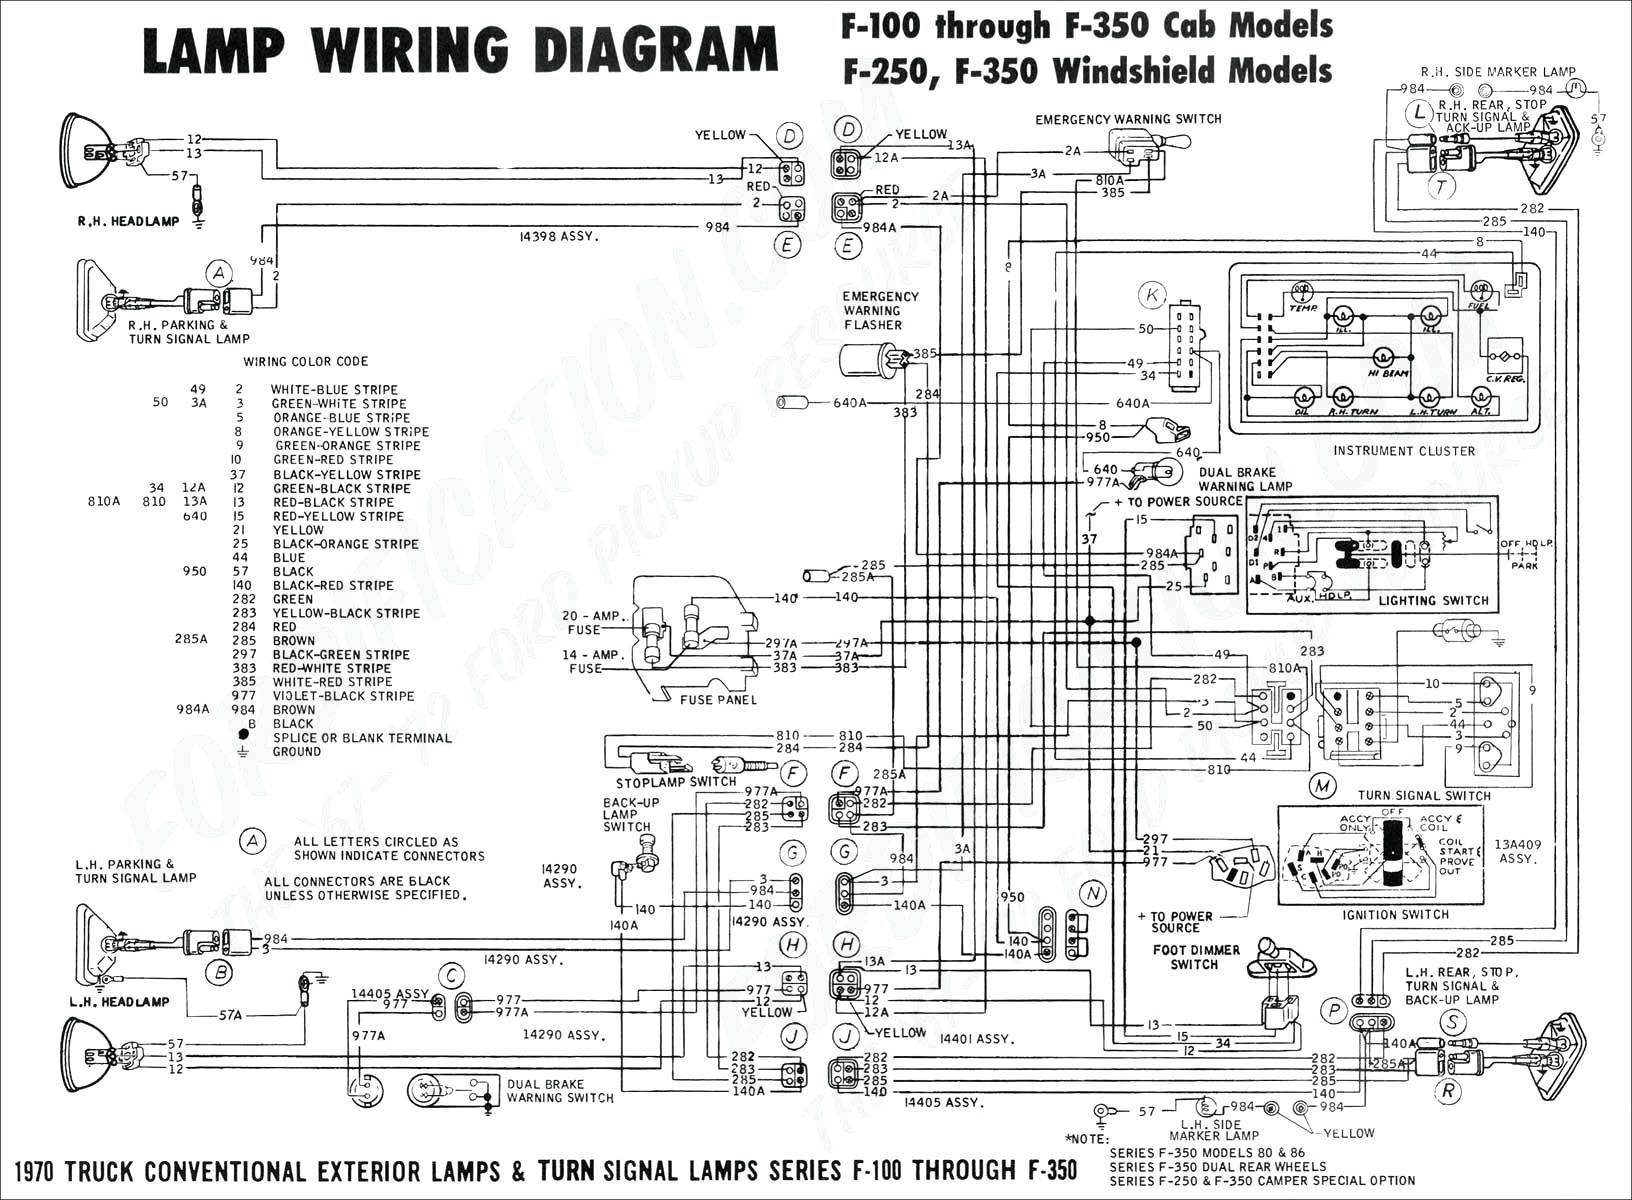 1969 Chevelle Wiring Diagram 1969 Gm Ignition Switch Wiring Another Blog About Wiring Diagram • Of 1969 Chevelle Wiring Diagram